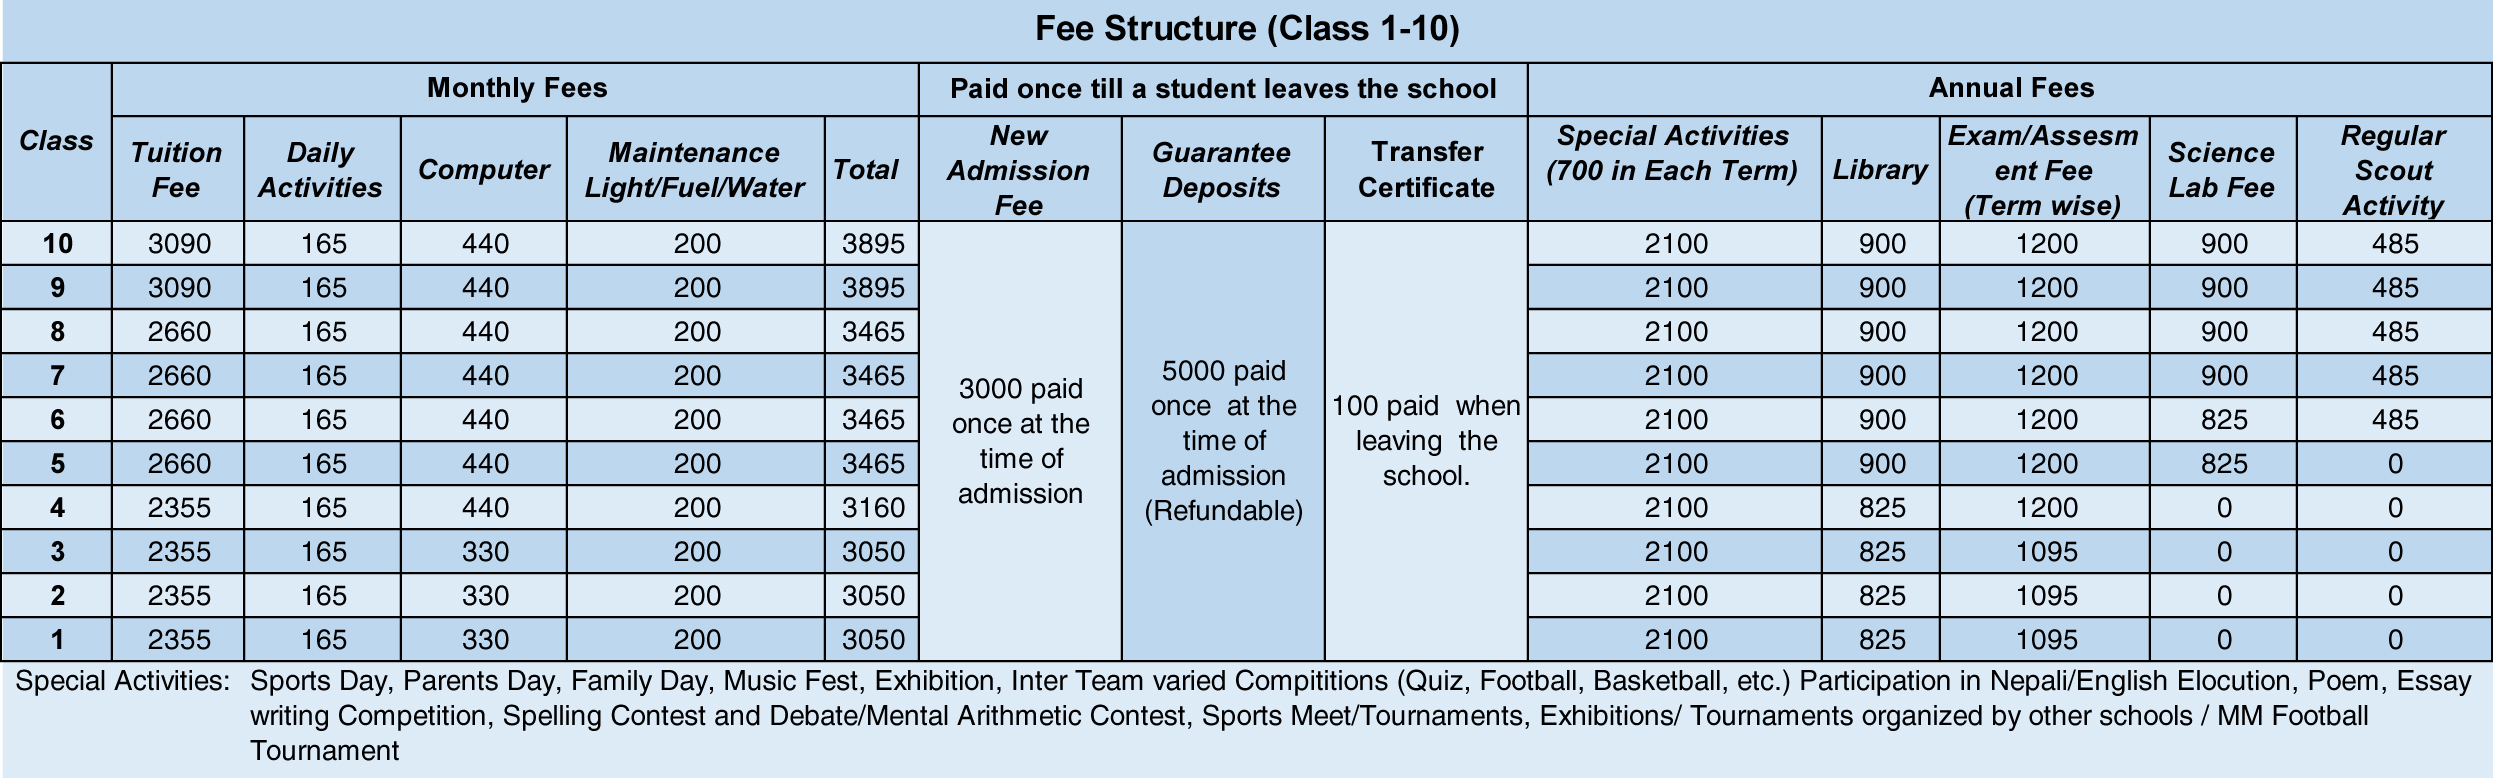 Fee Structure Class 1-10 St. Xavier School, Godavari